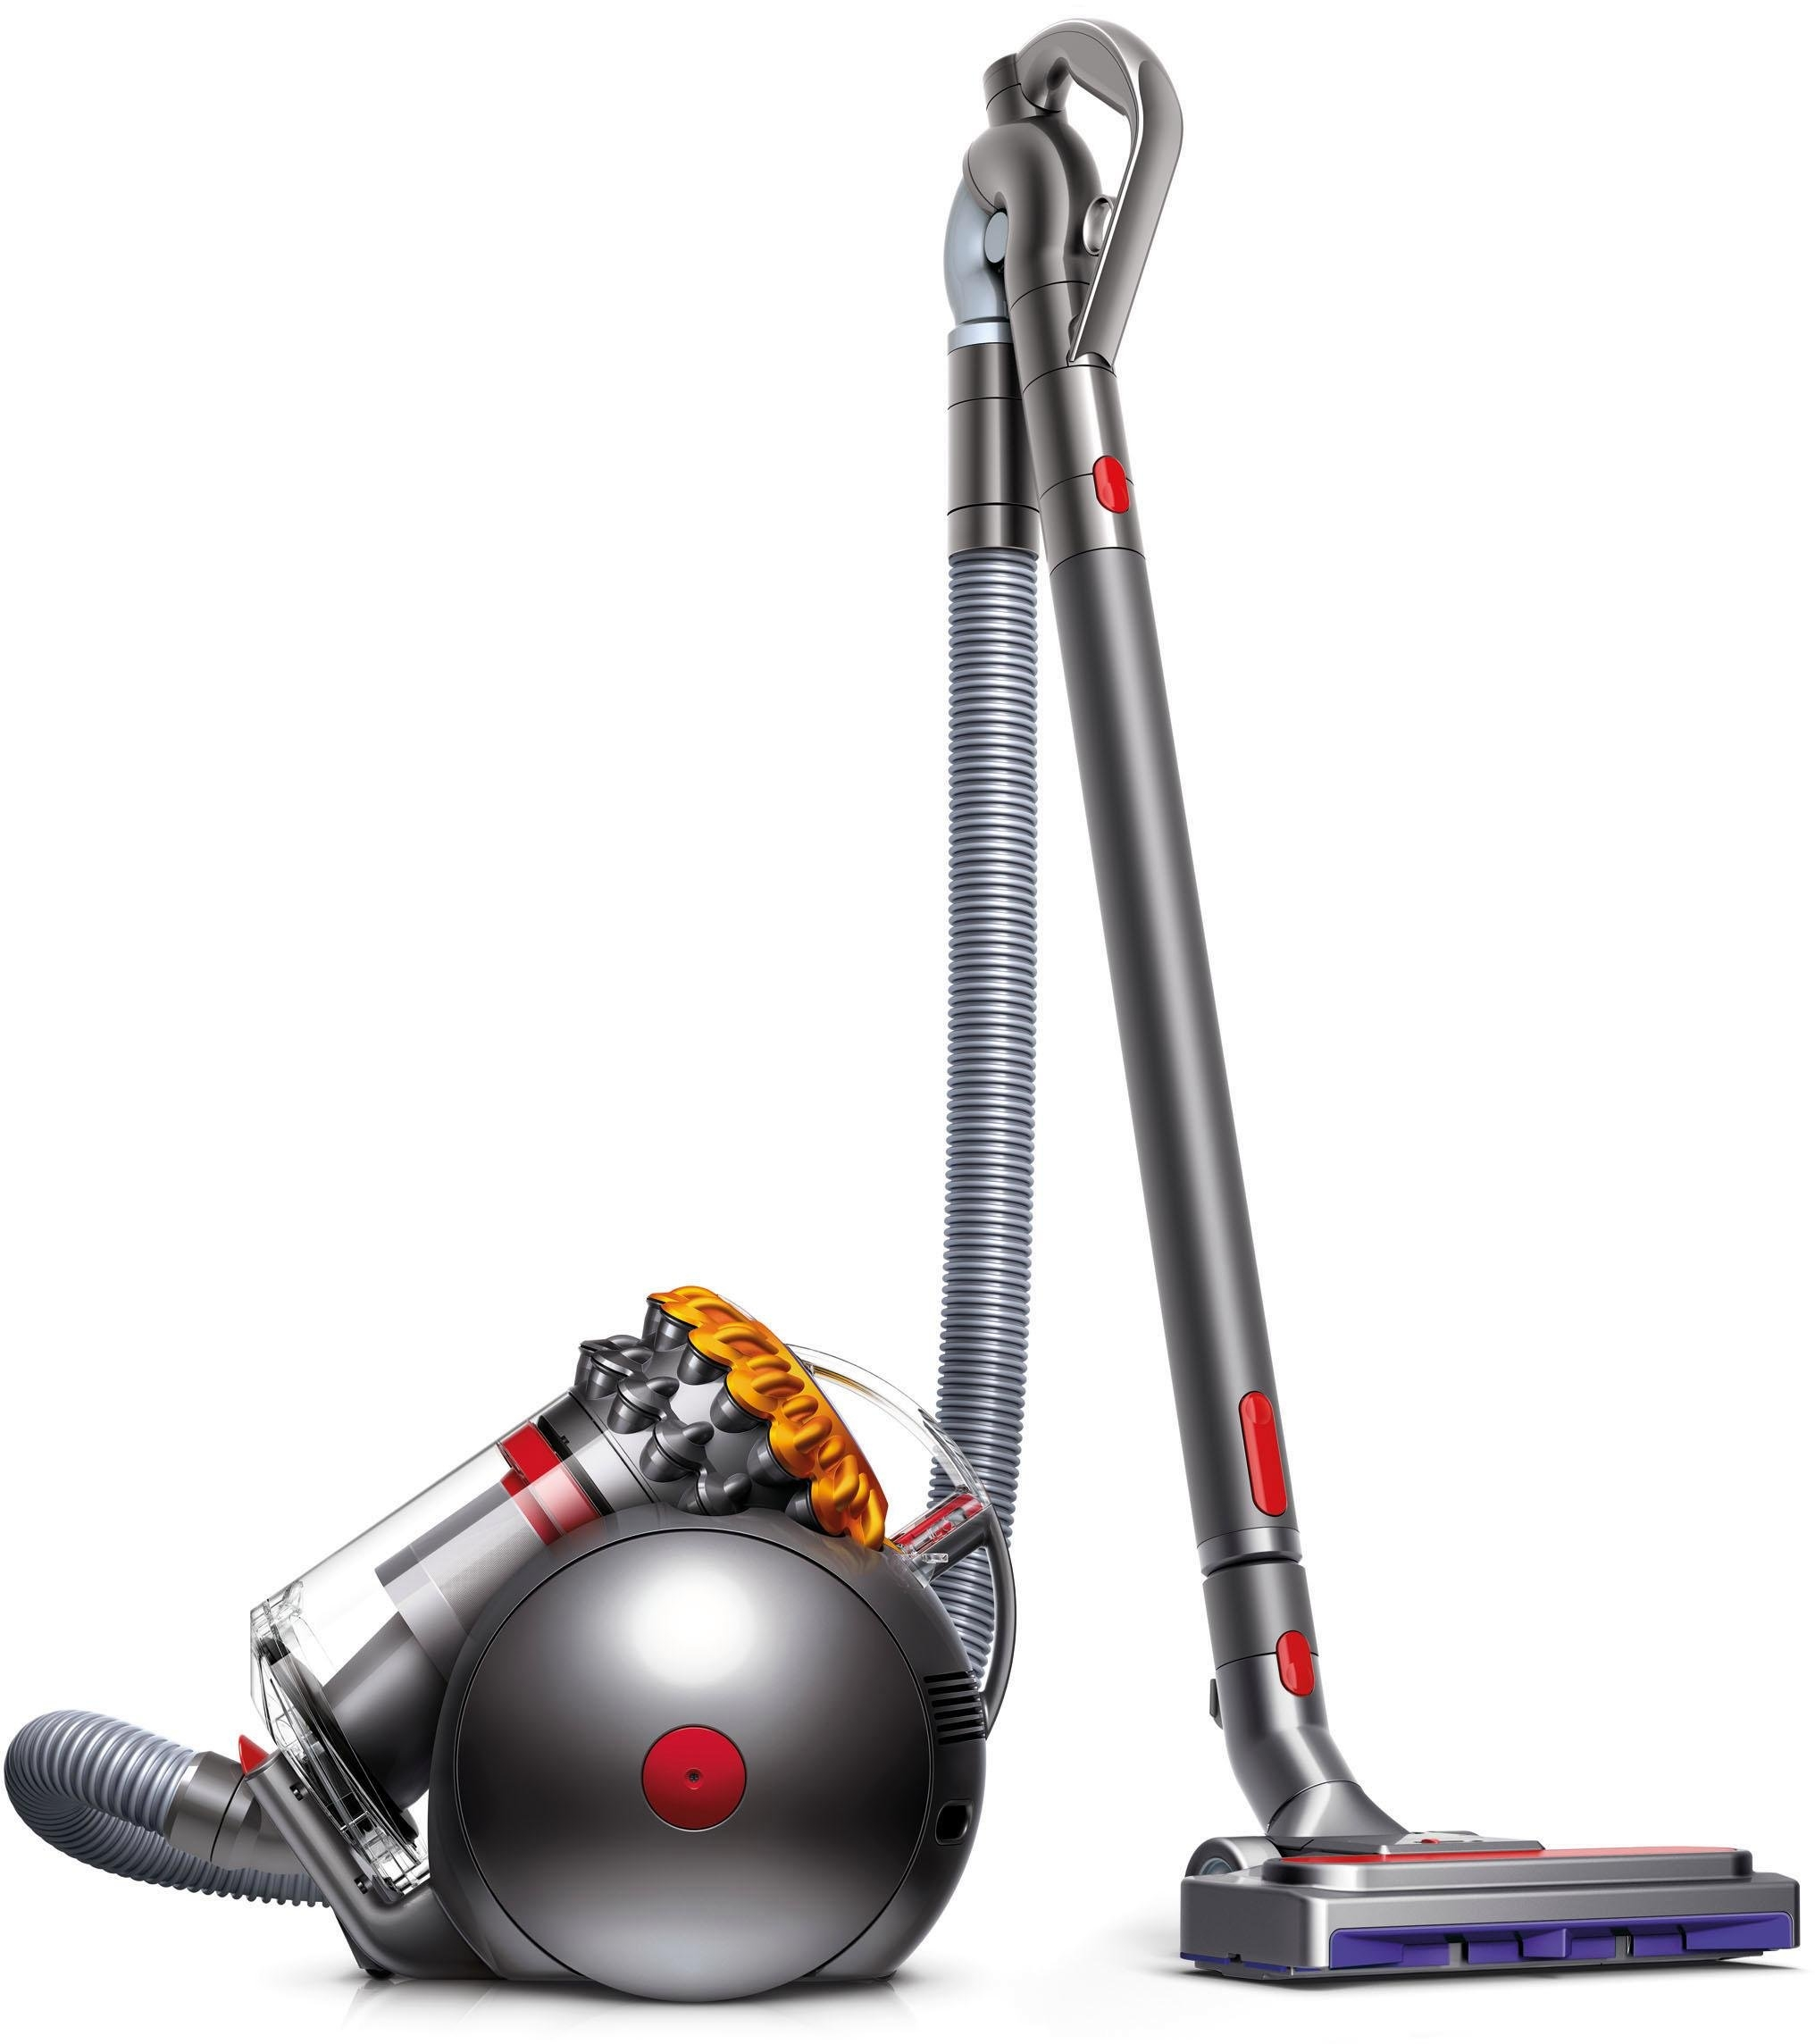 cylinder floor product ball bagless cinetic cleaner big vacuum dyson multi dust iron nickle emptying cleaners